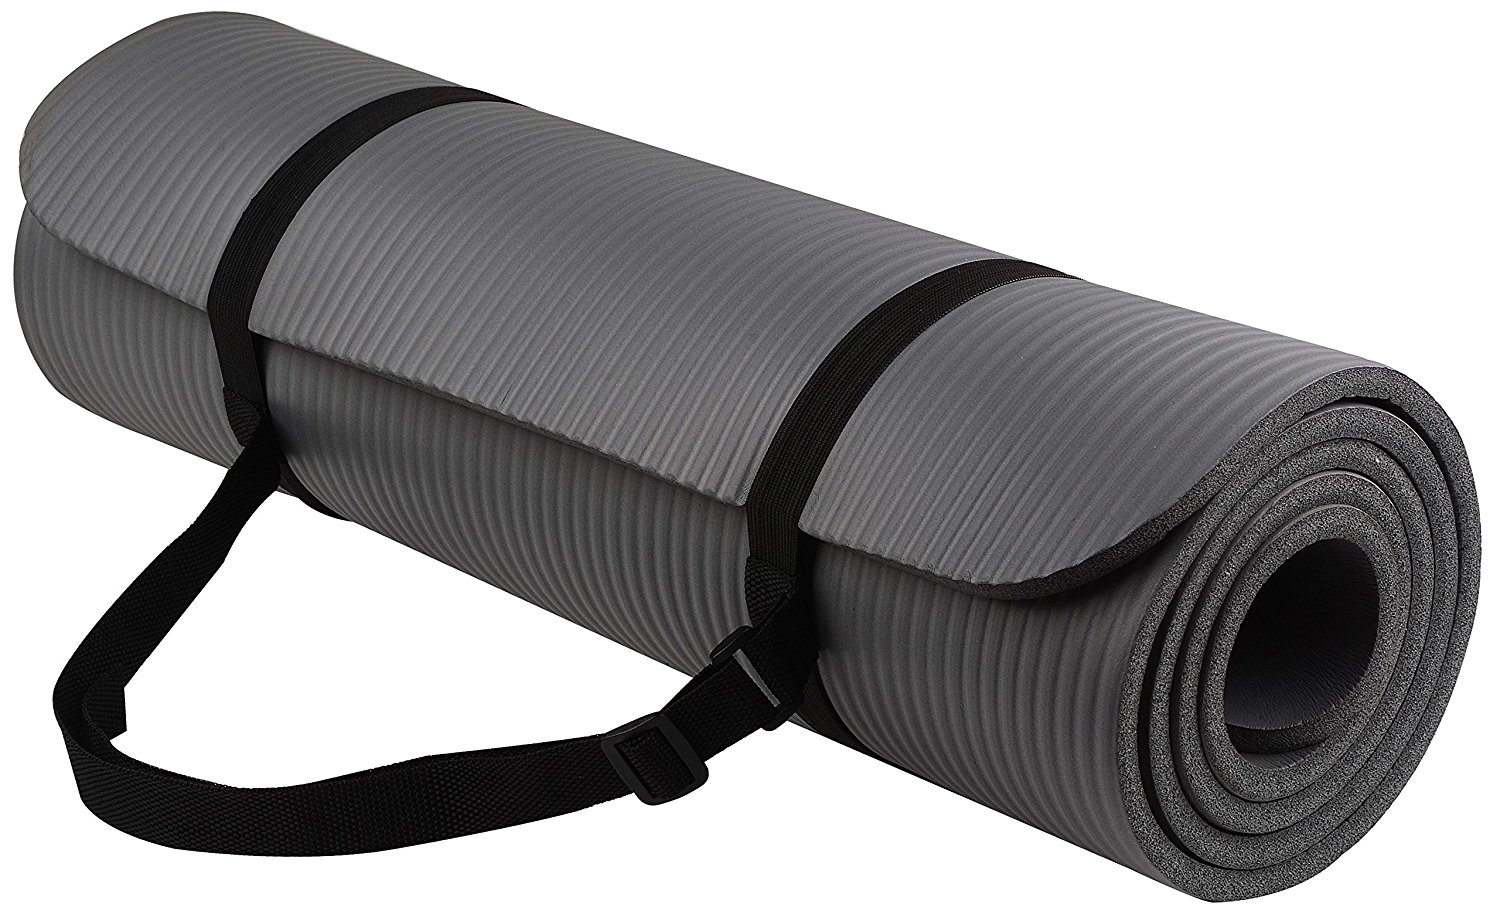 BalanceFrom GoYoga All-Purpose 1 2-Inch Extra Thick High Density Anti-Tear Exercise Yoga Mat with Carrying... by BalanceFrom